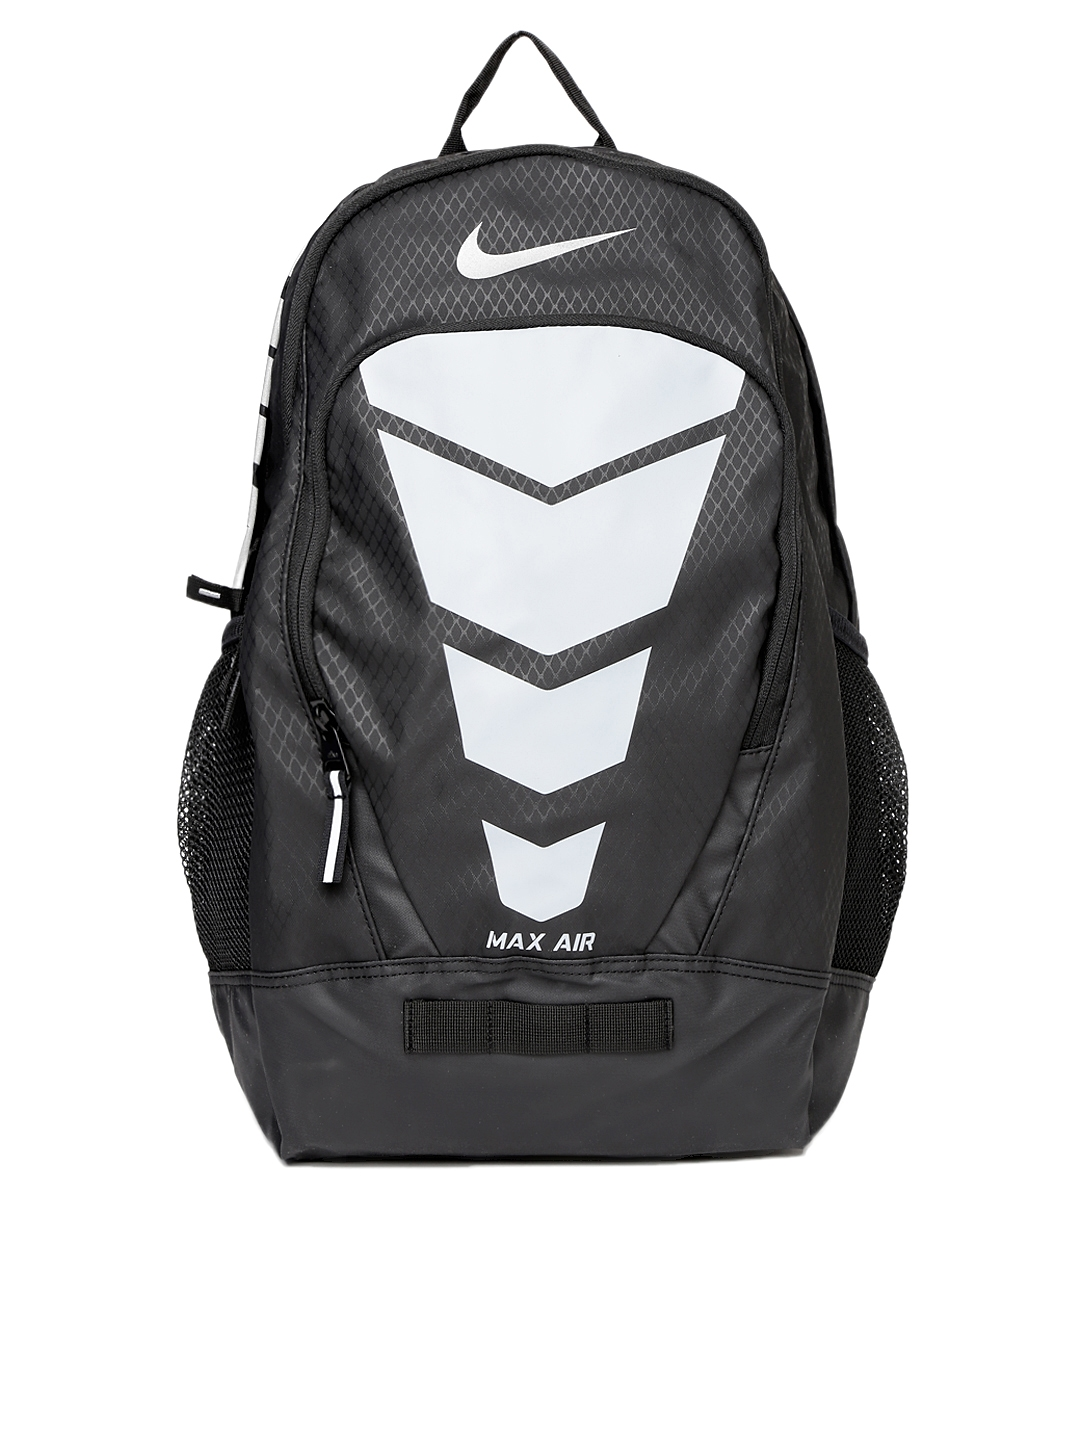 66de3bb52702 Buy Nike Unisex Black   Grey Max Air Vapor Backpack - Backpacks for Unisex  1110481